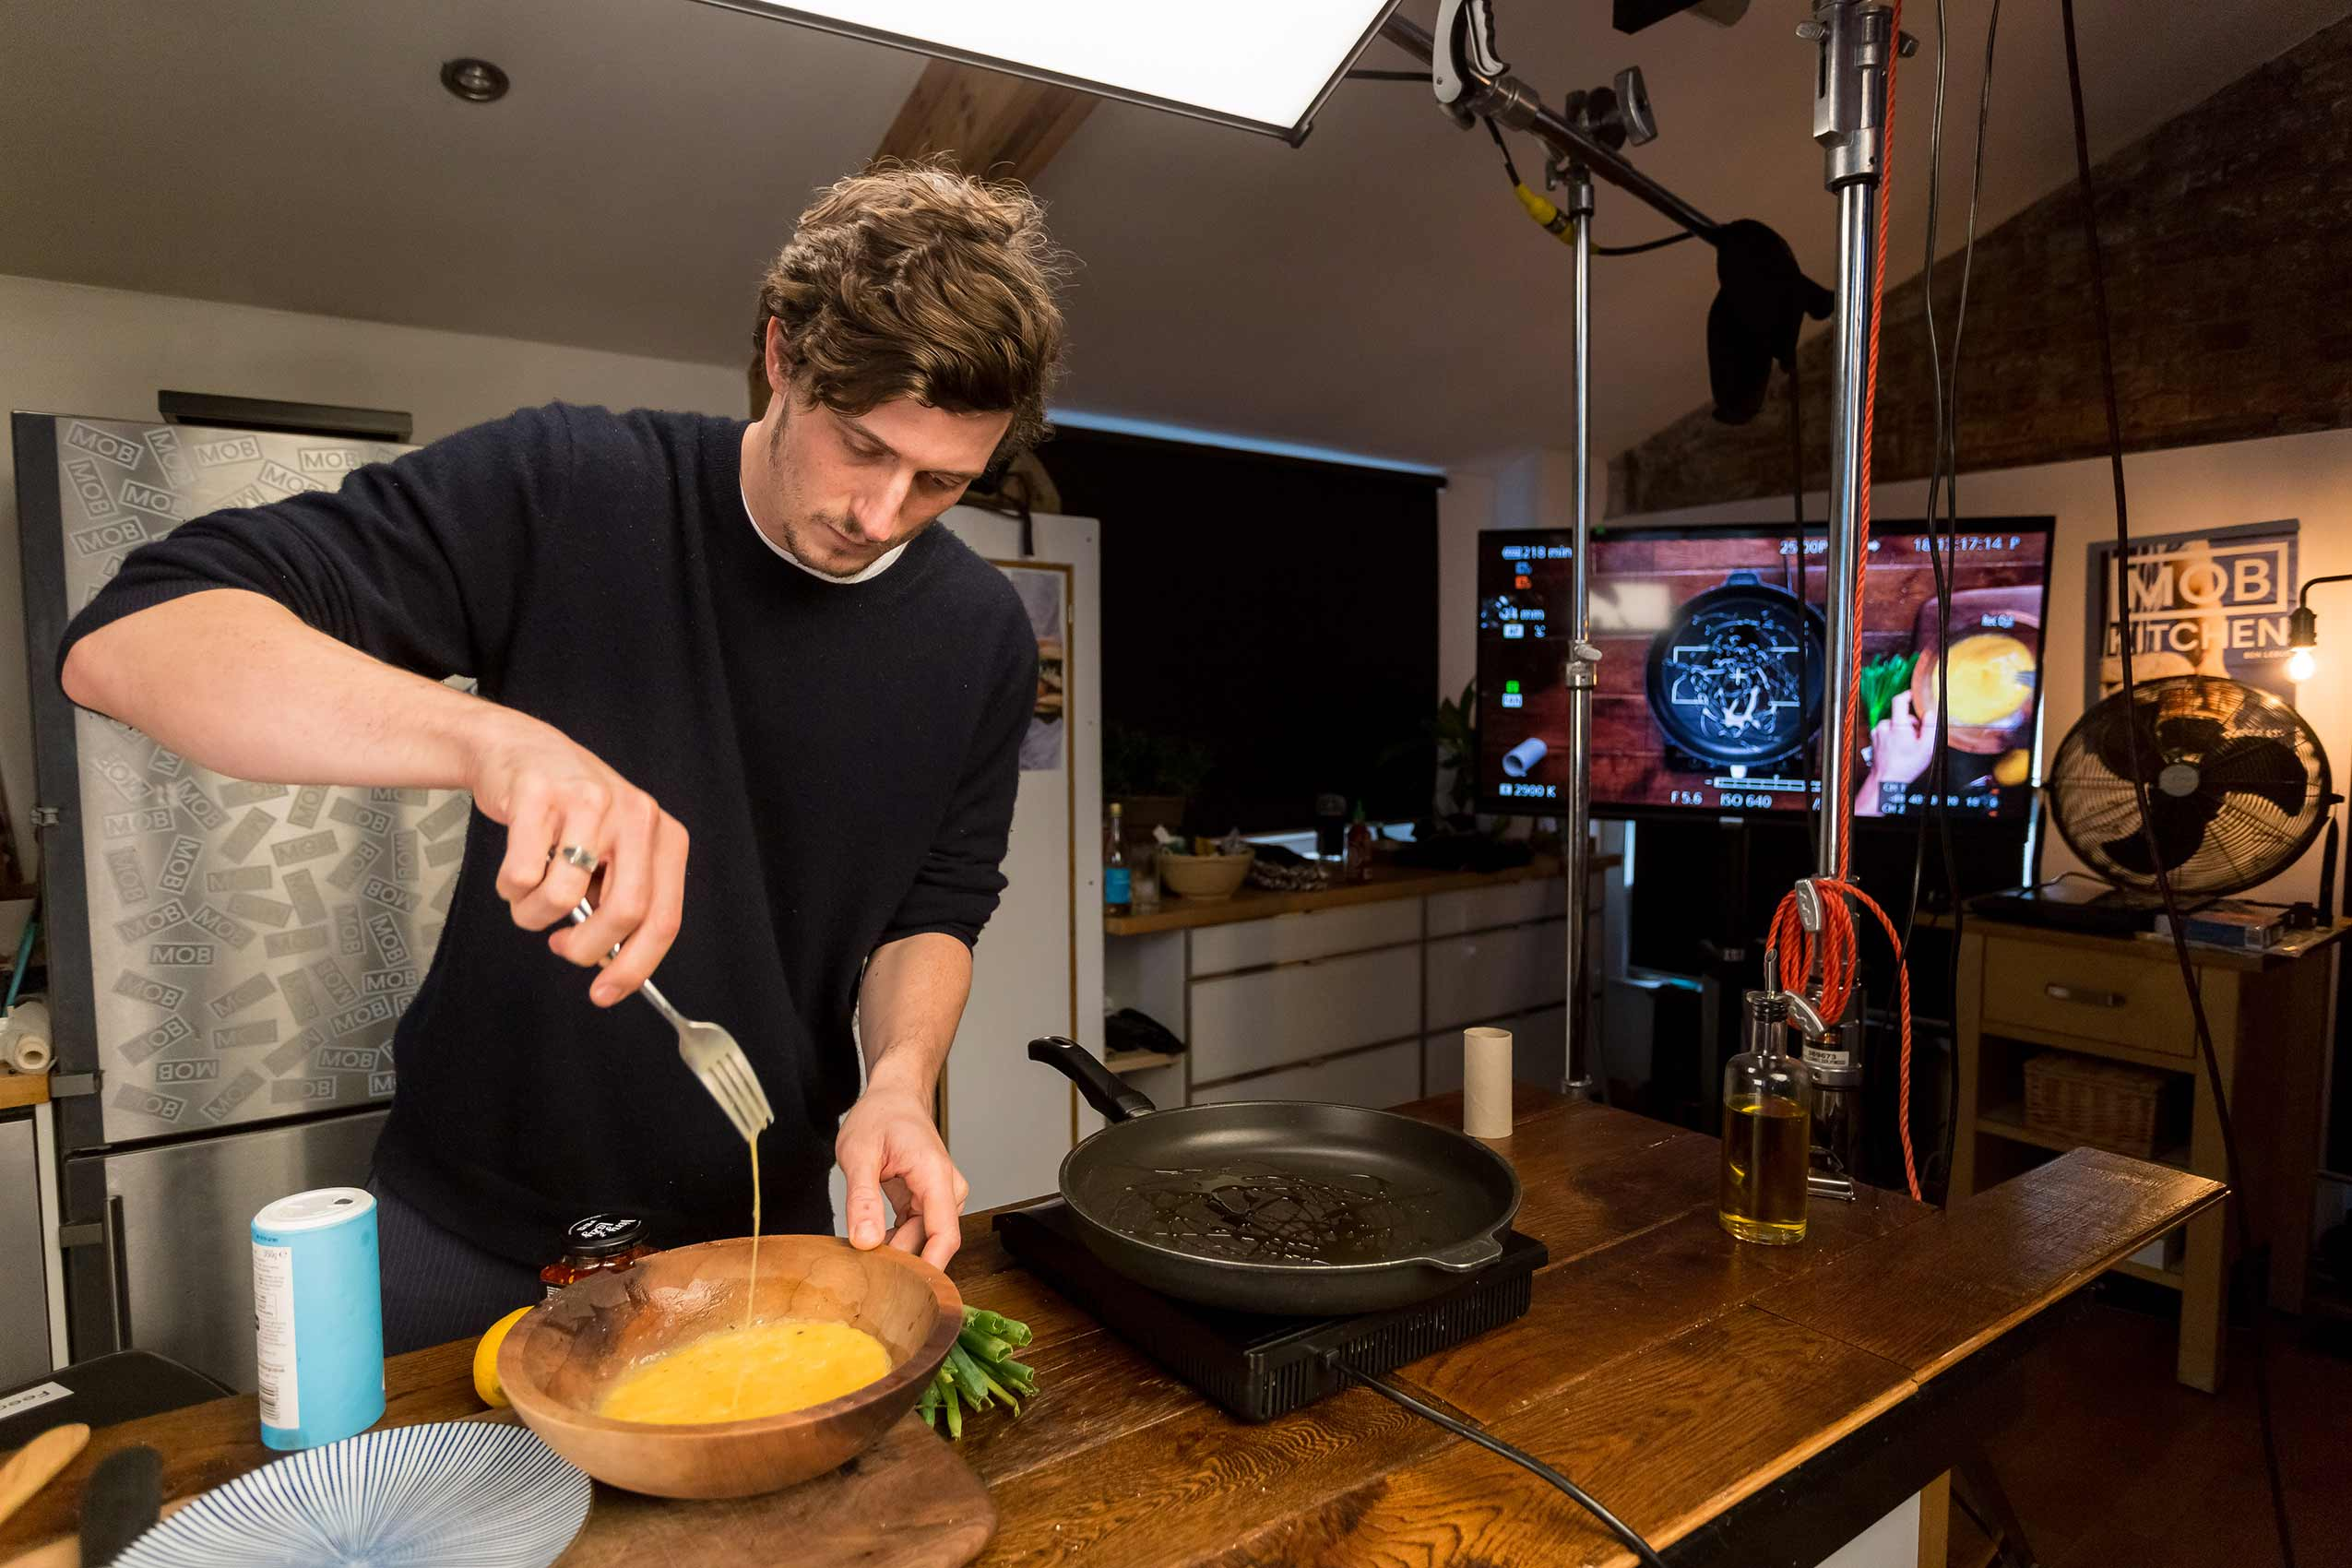 Mob Kitchen founder Ben Lebus scrambling eggs with a fork in a wooden bowl in his office kitchen